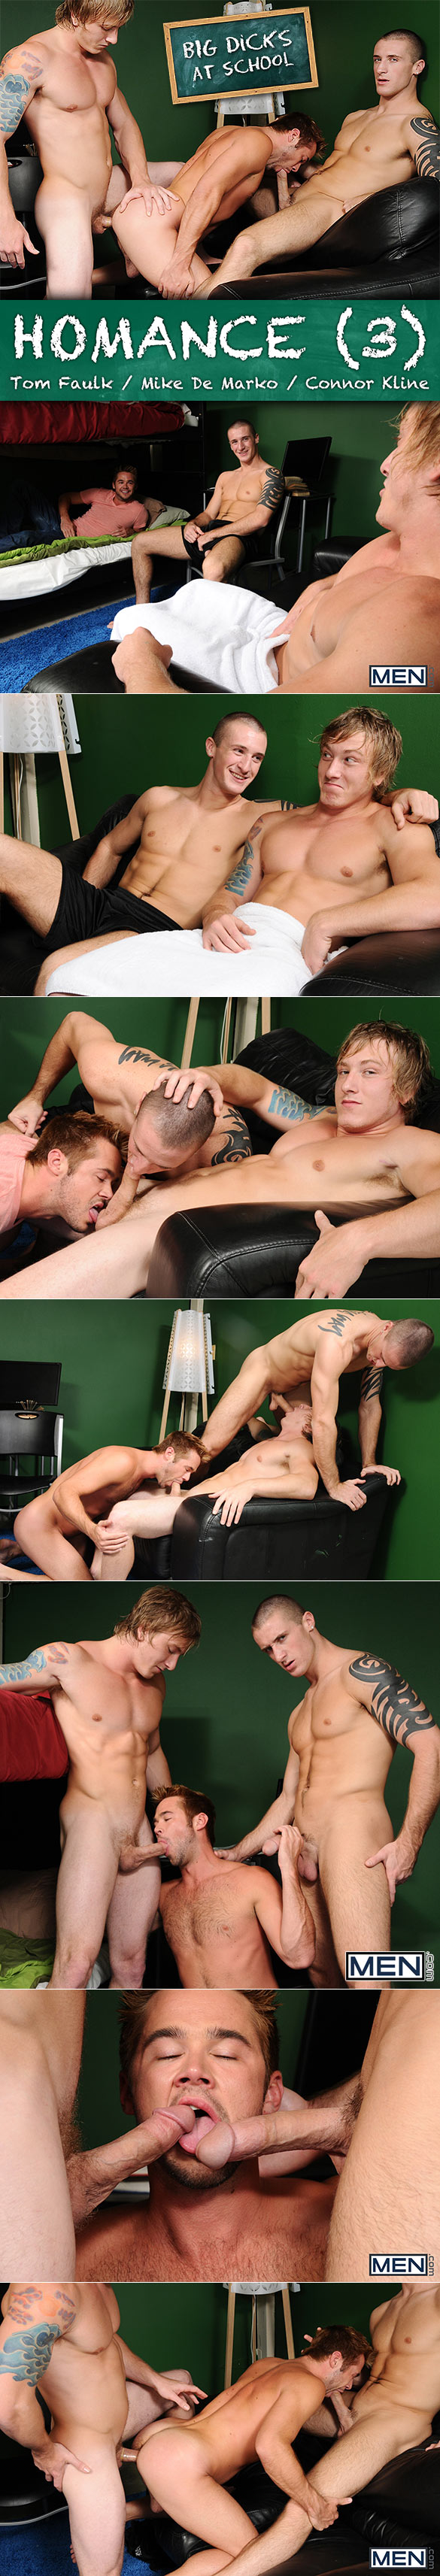 "Men.com: Connor Kline, Tom Faulk and Mike De Marko's hot threeway in ""Homance, Part 3"""